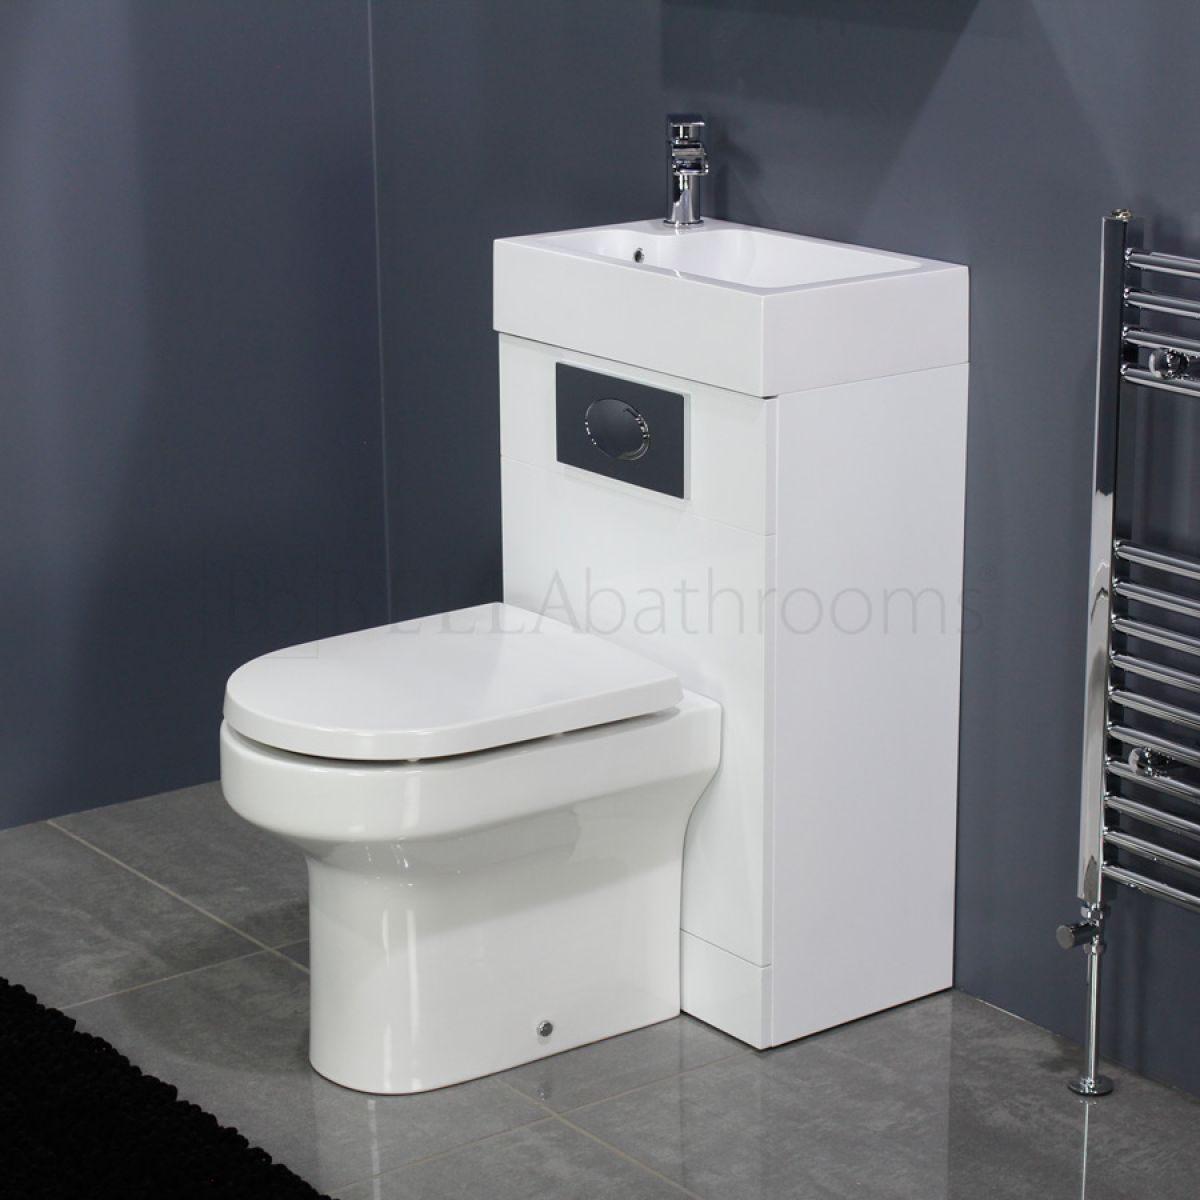 Manhattan Space Saving Toilet with Sink on Top